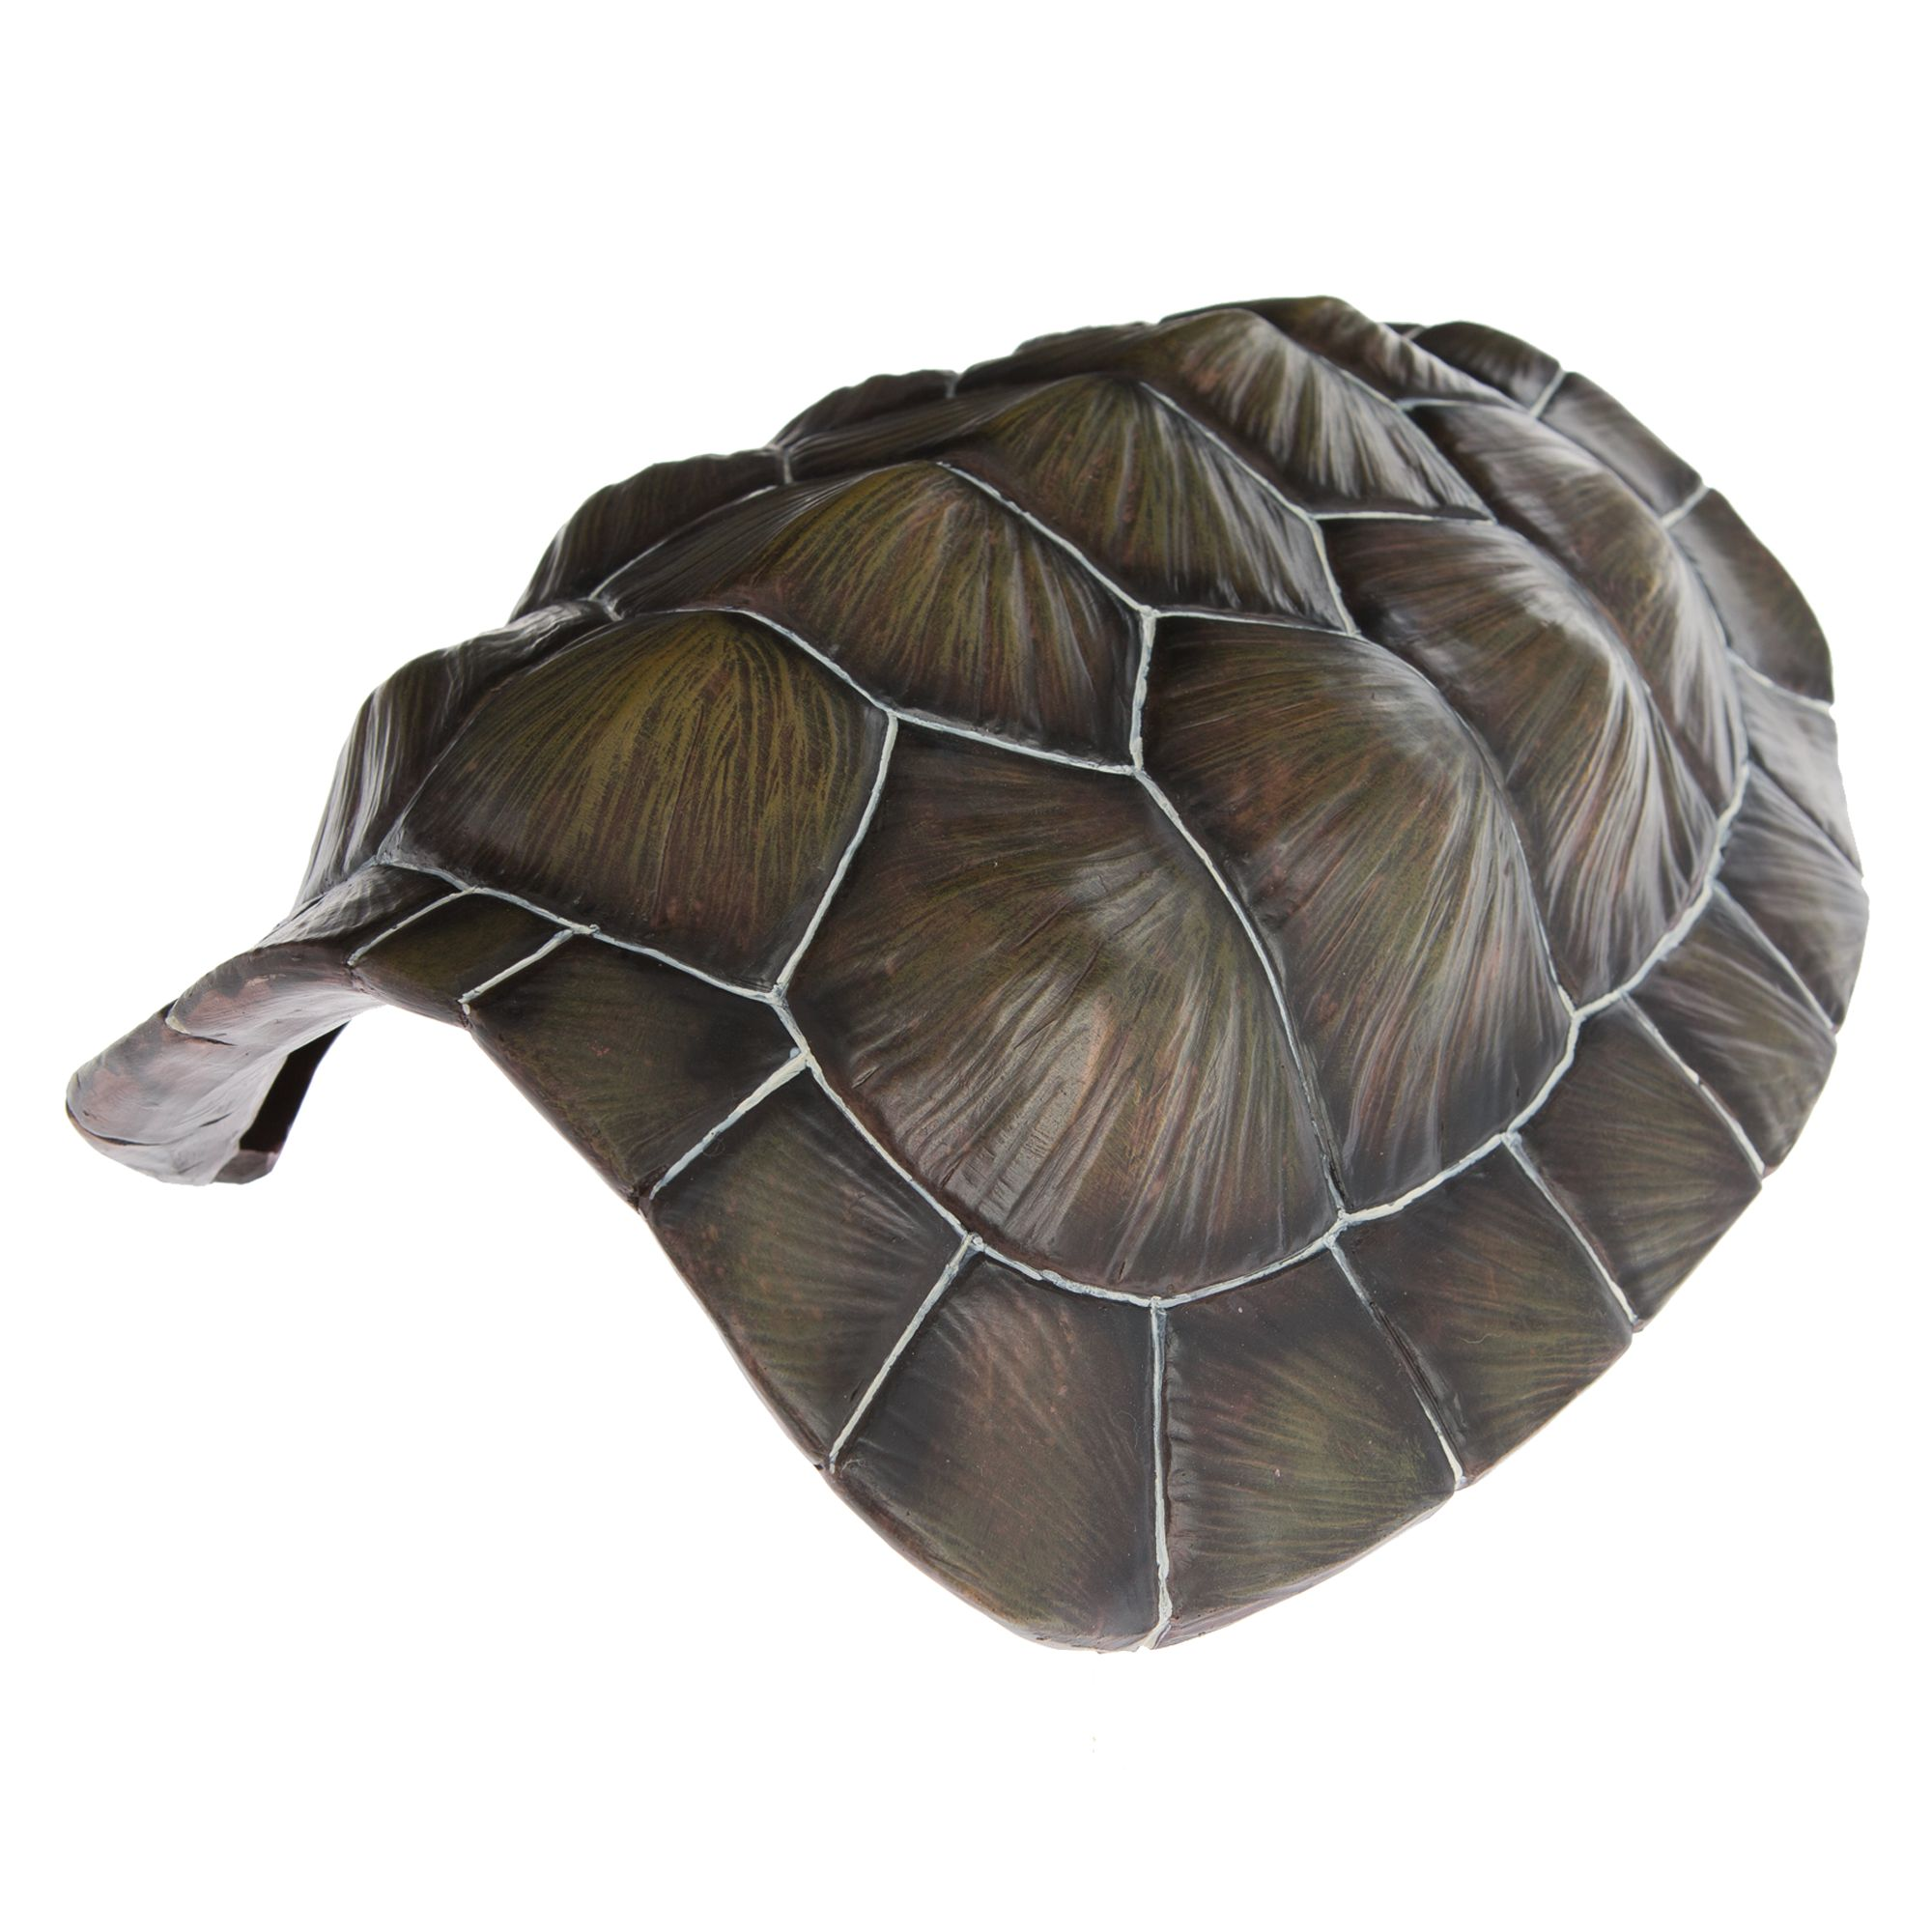 All Living Things Tortoise Shell Reptile Ornament Brown